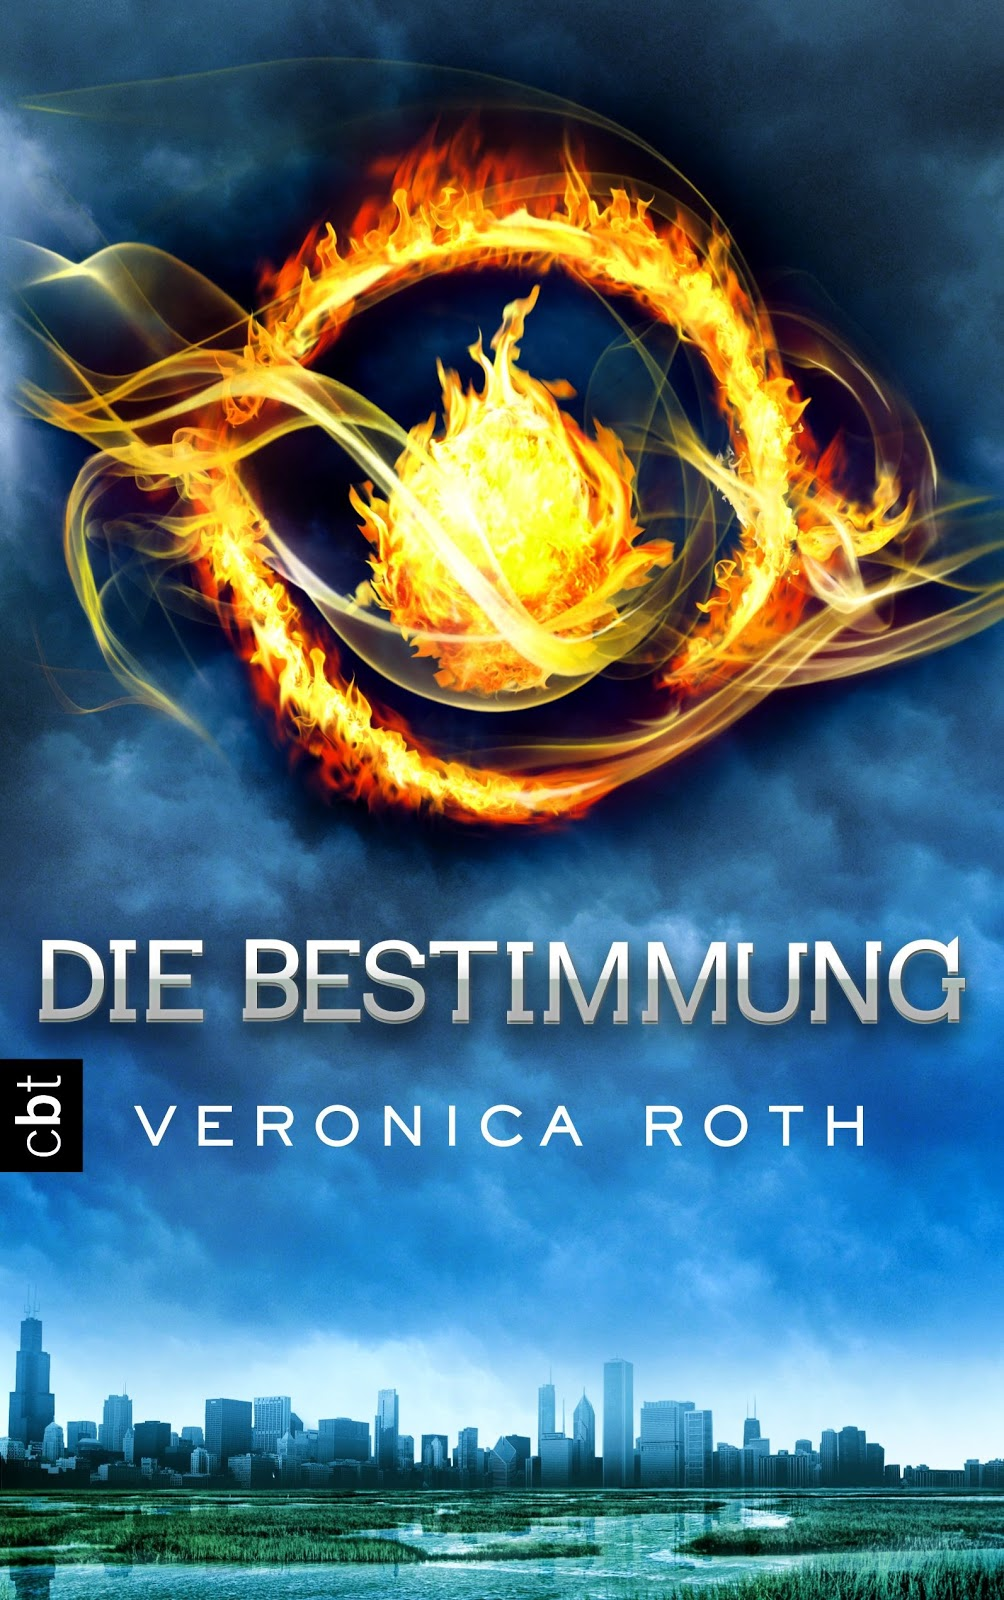 http://www.randomhouse.de/content/edition/covervoila_hires/Roth_VDie_Bestimmung_01_120566.jpg